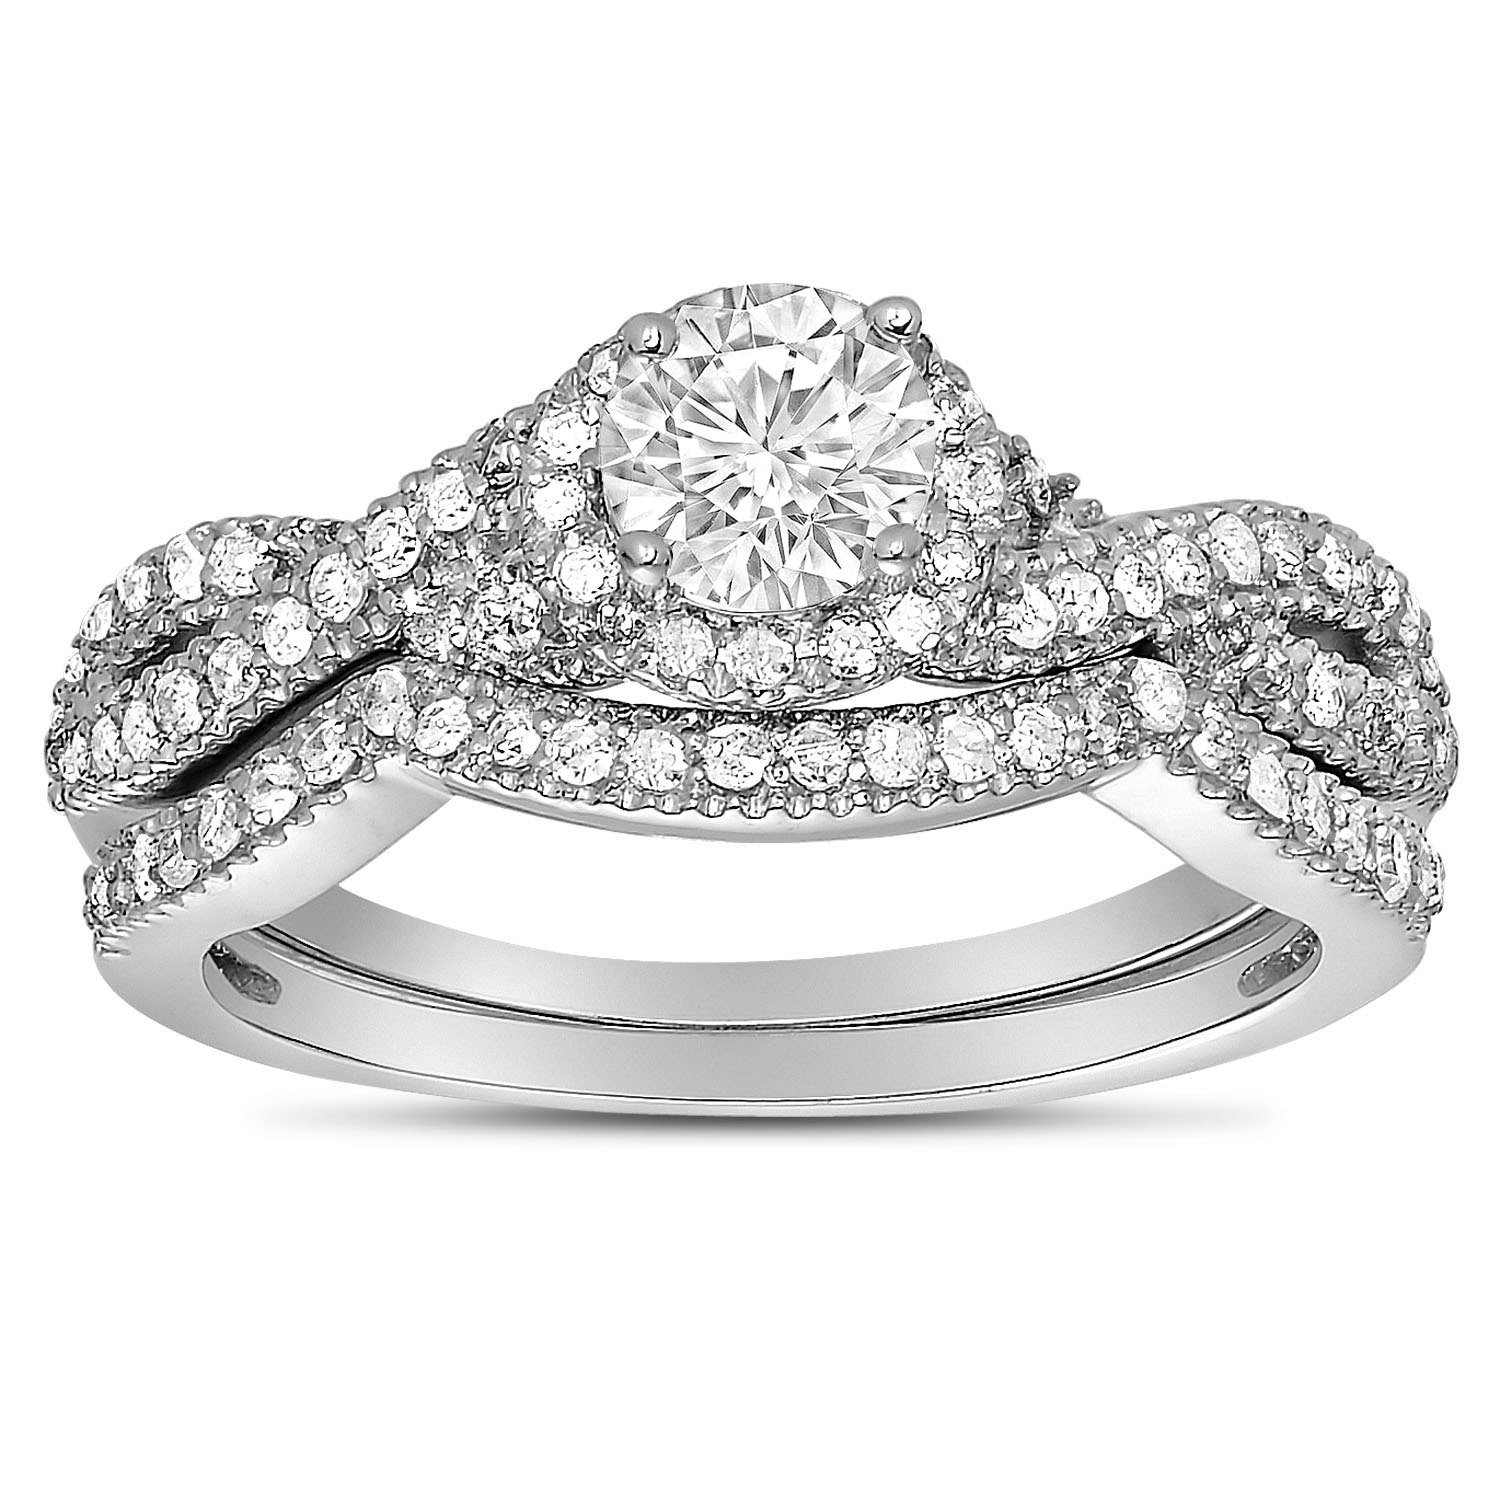 2 carat round diamond infinity wedding ring set in white gold for her - Rings For Wedding